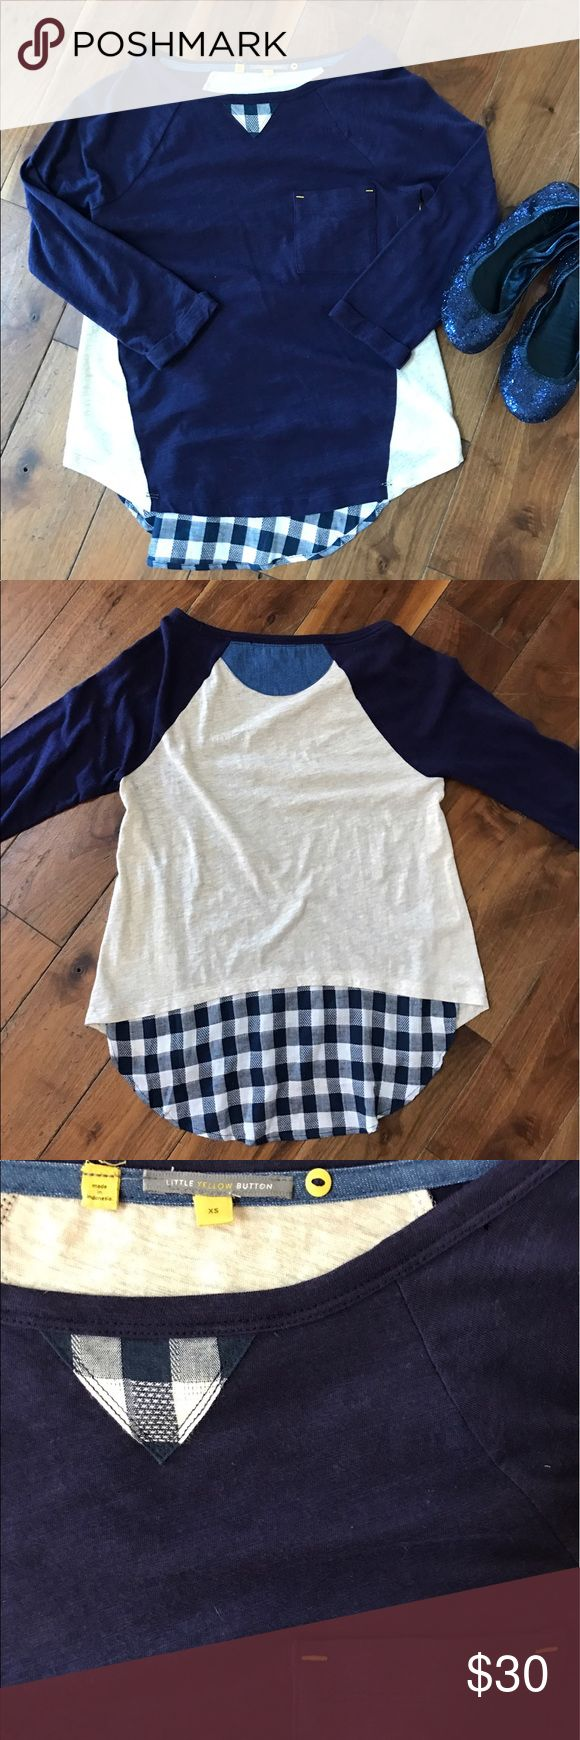 Little yellow button top! 🌼 Anthropologie brand Gingham / navy blue Anthropologie top Anthropologie Tops Tees - Long Sleeve